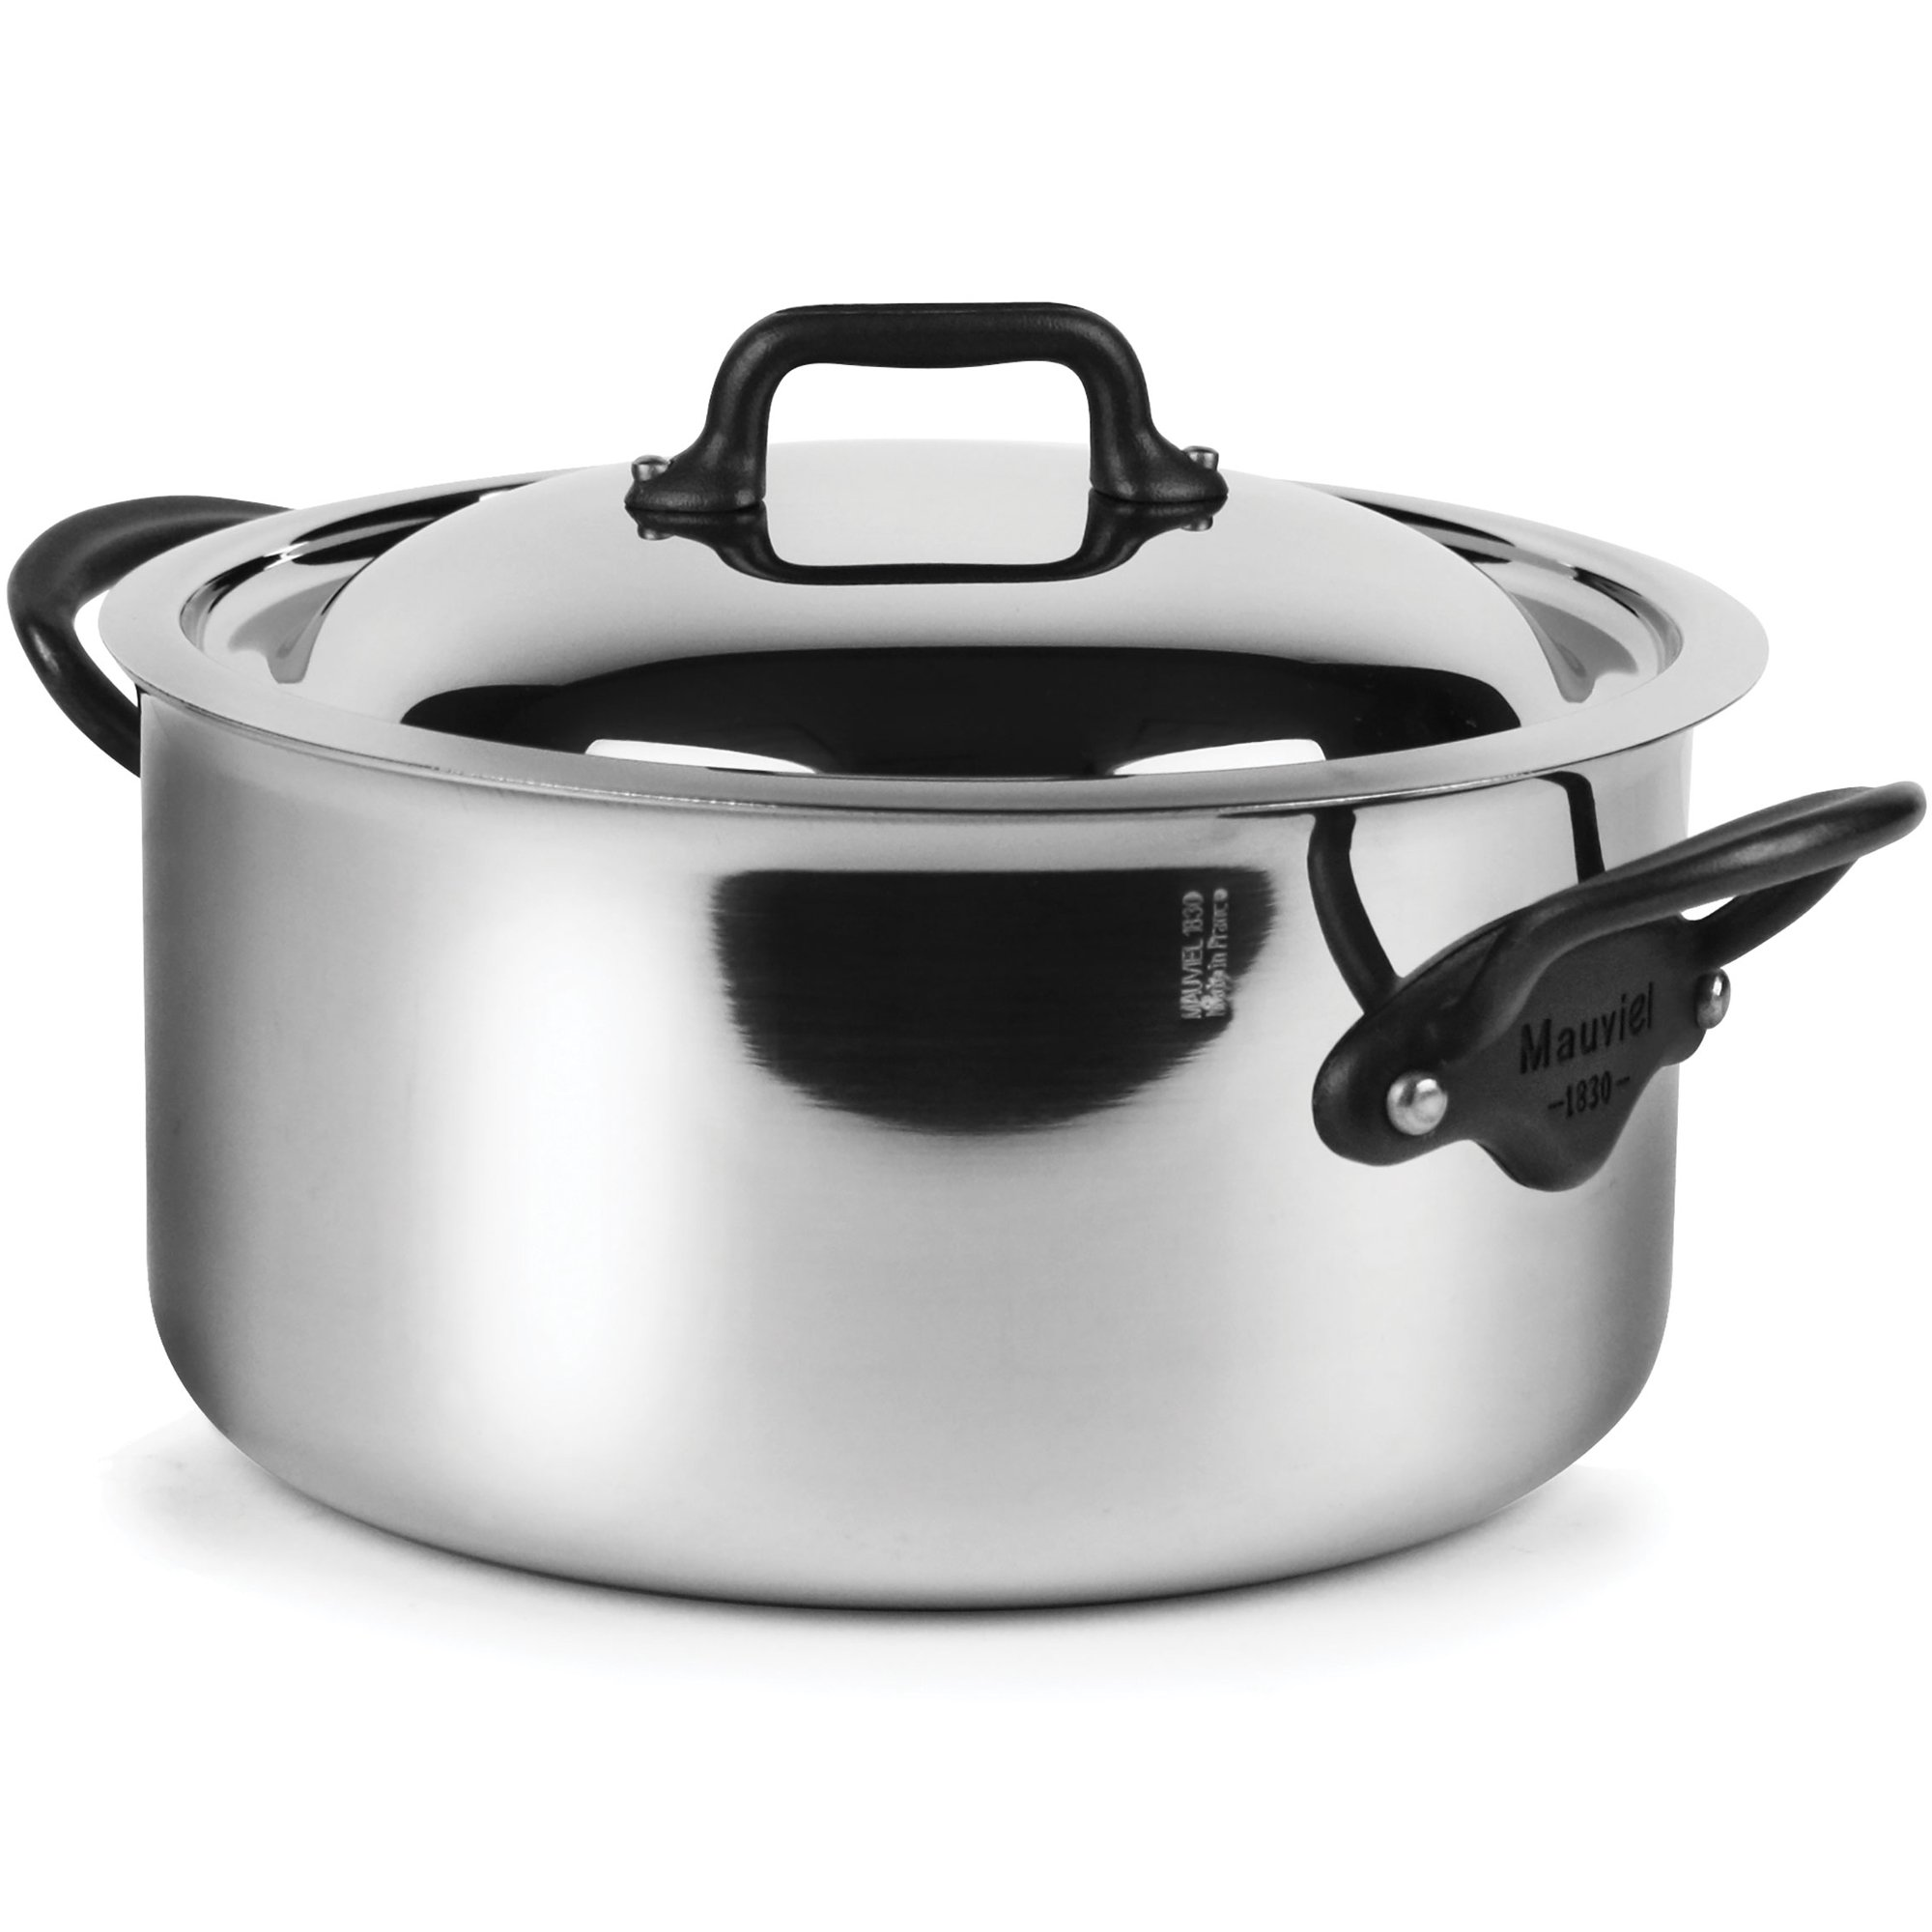 Mauviel M'Cook Pro 5-ply Stainless Steel 3.6-quart Casserole with Lid